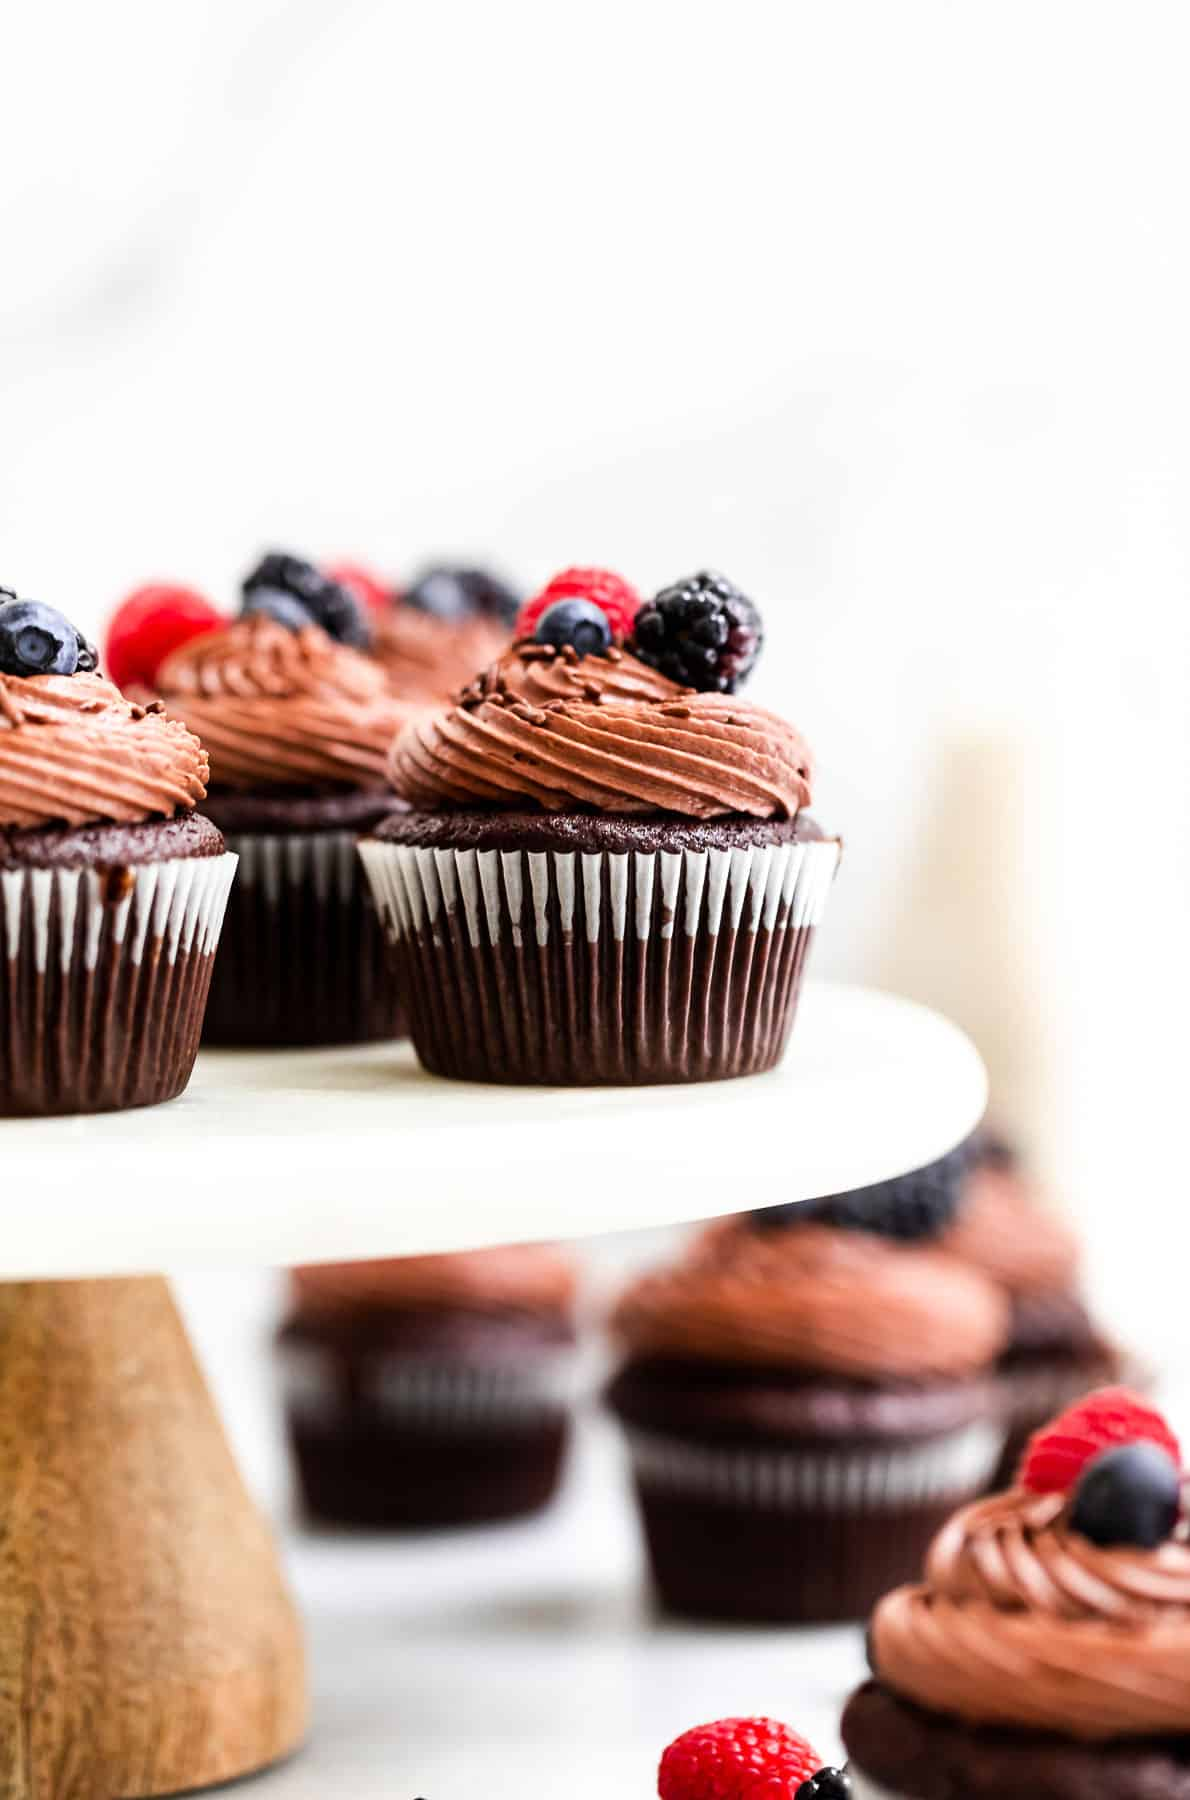 almond flour cupcakes on a cake stand with berries